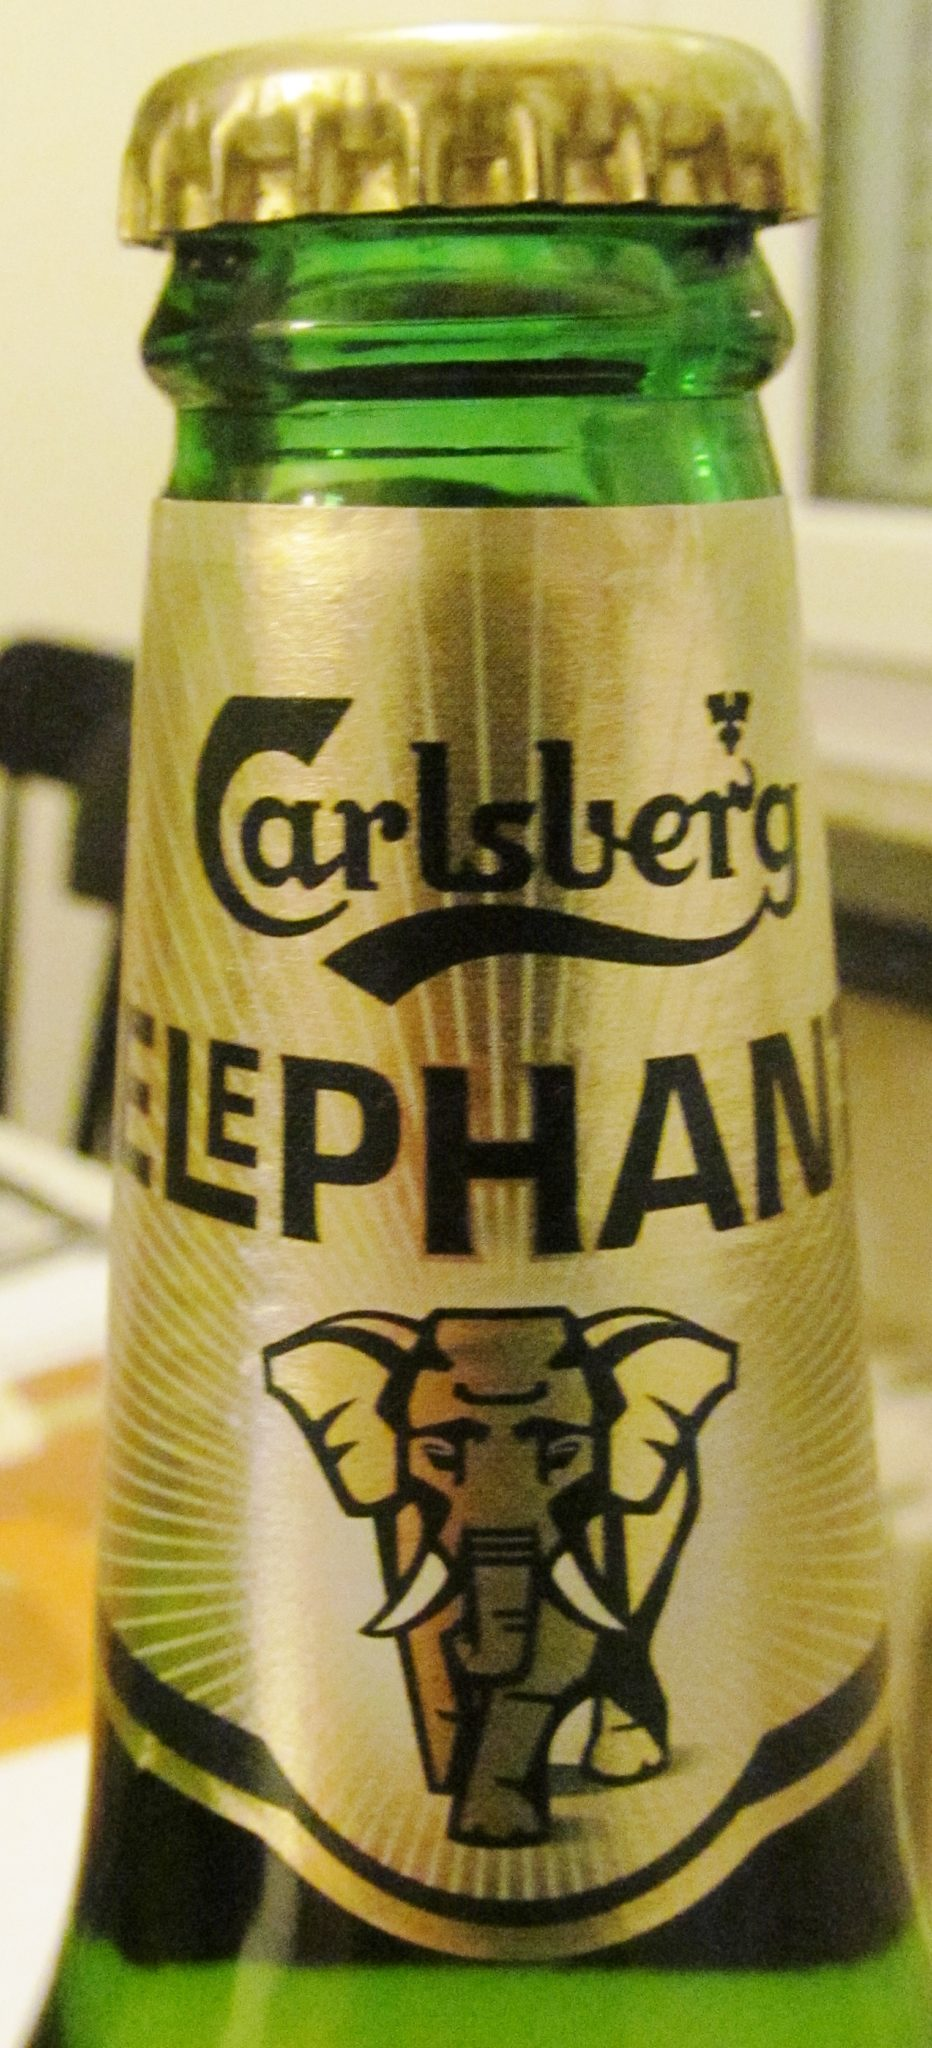 Carlsberg Elephant Beer, The Elephant Gate, Copenhagen, Denmark, Danish beer